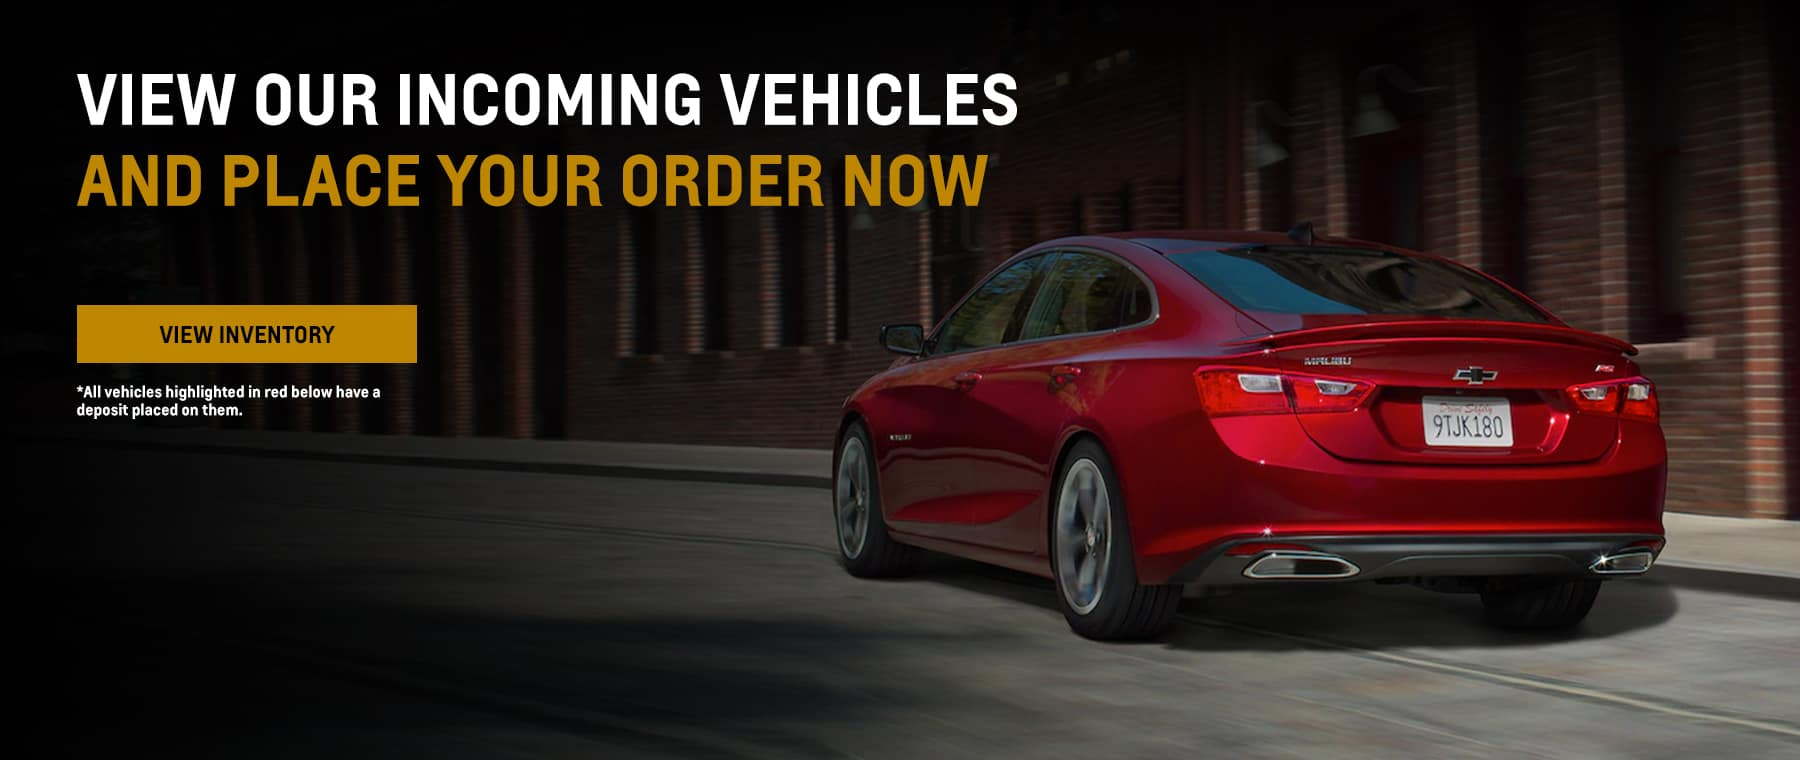 Incoming Vehicles